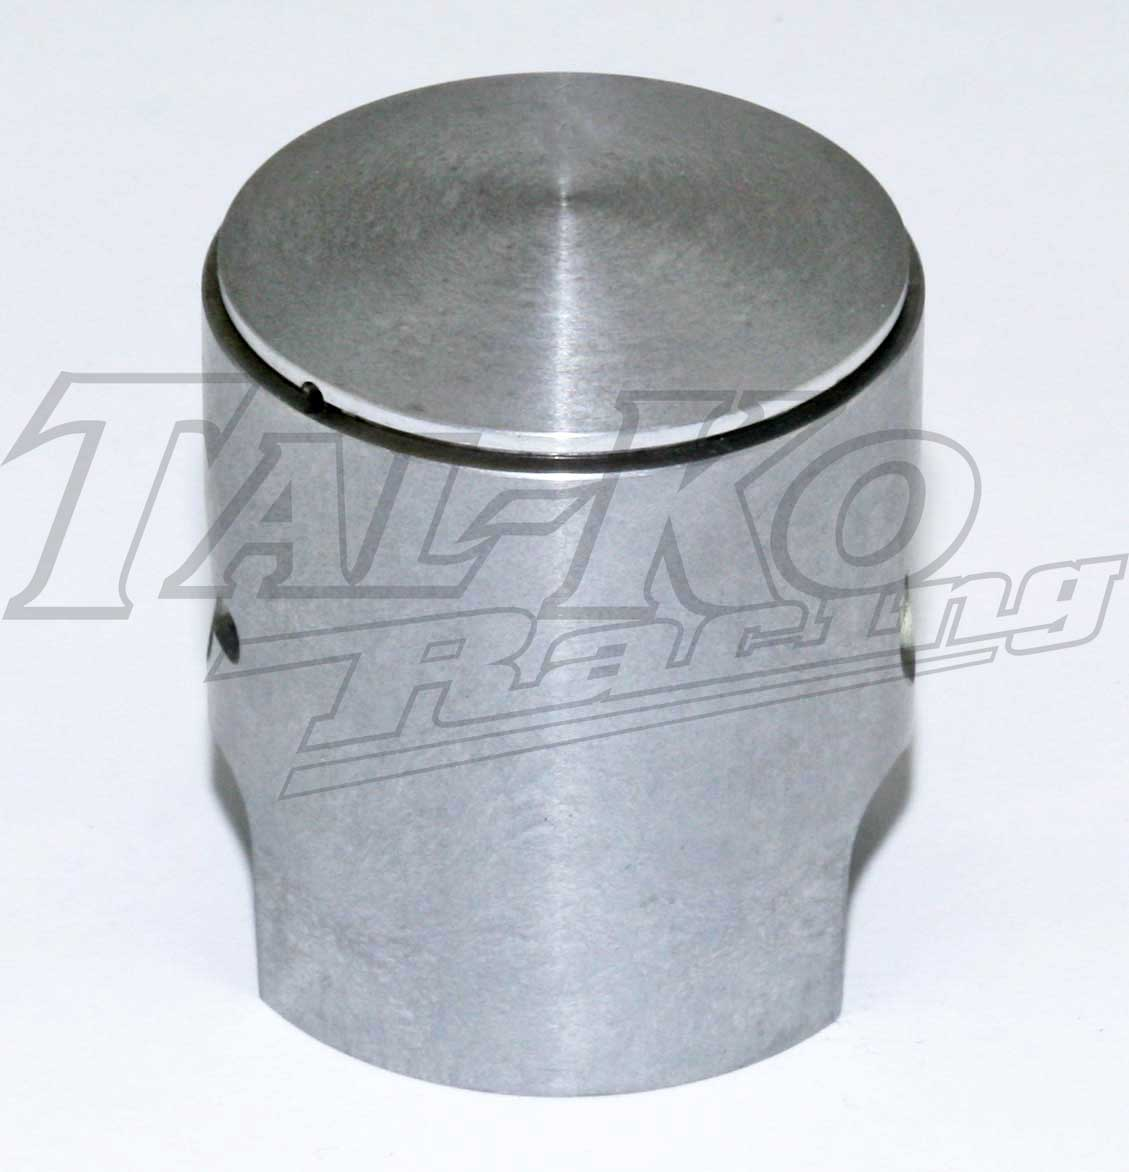 UNCOATED TT 49.92 to 50.00mm